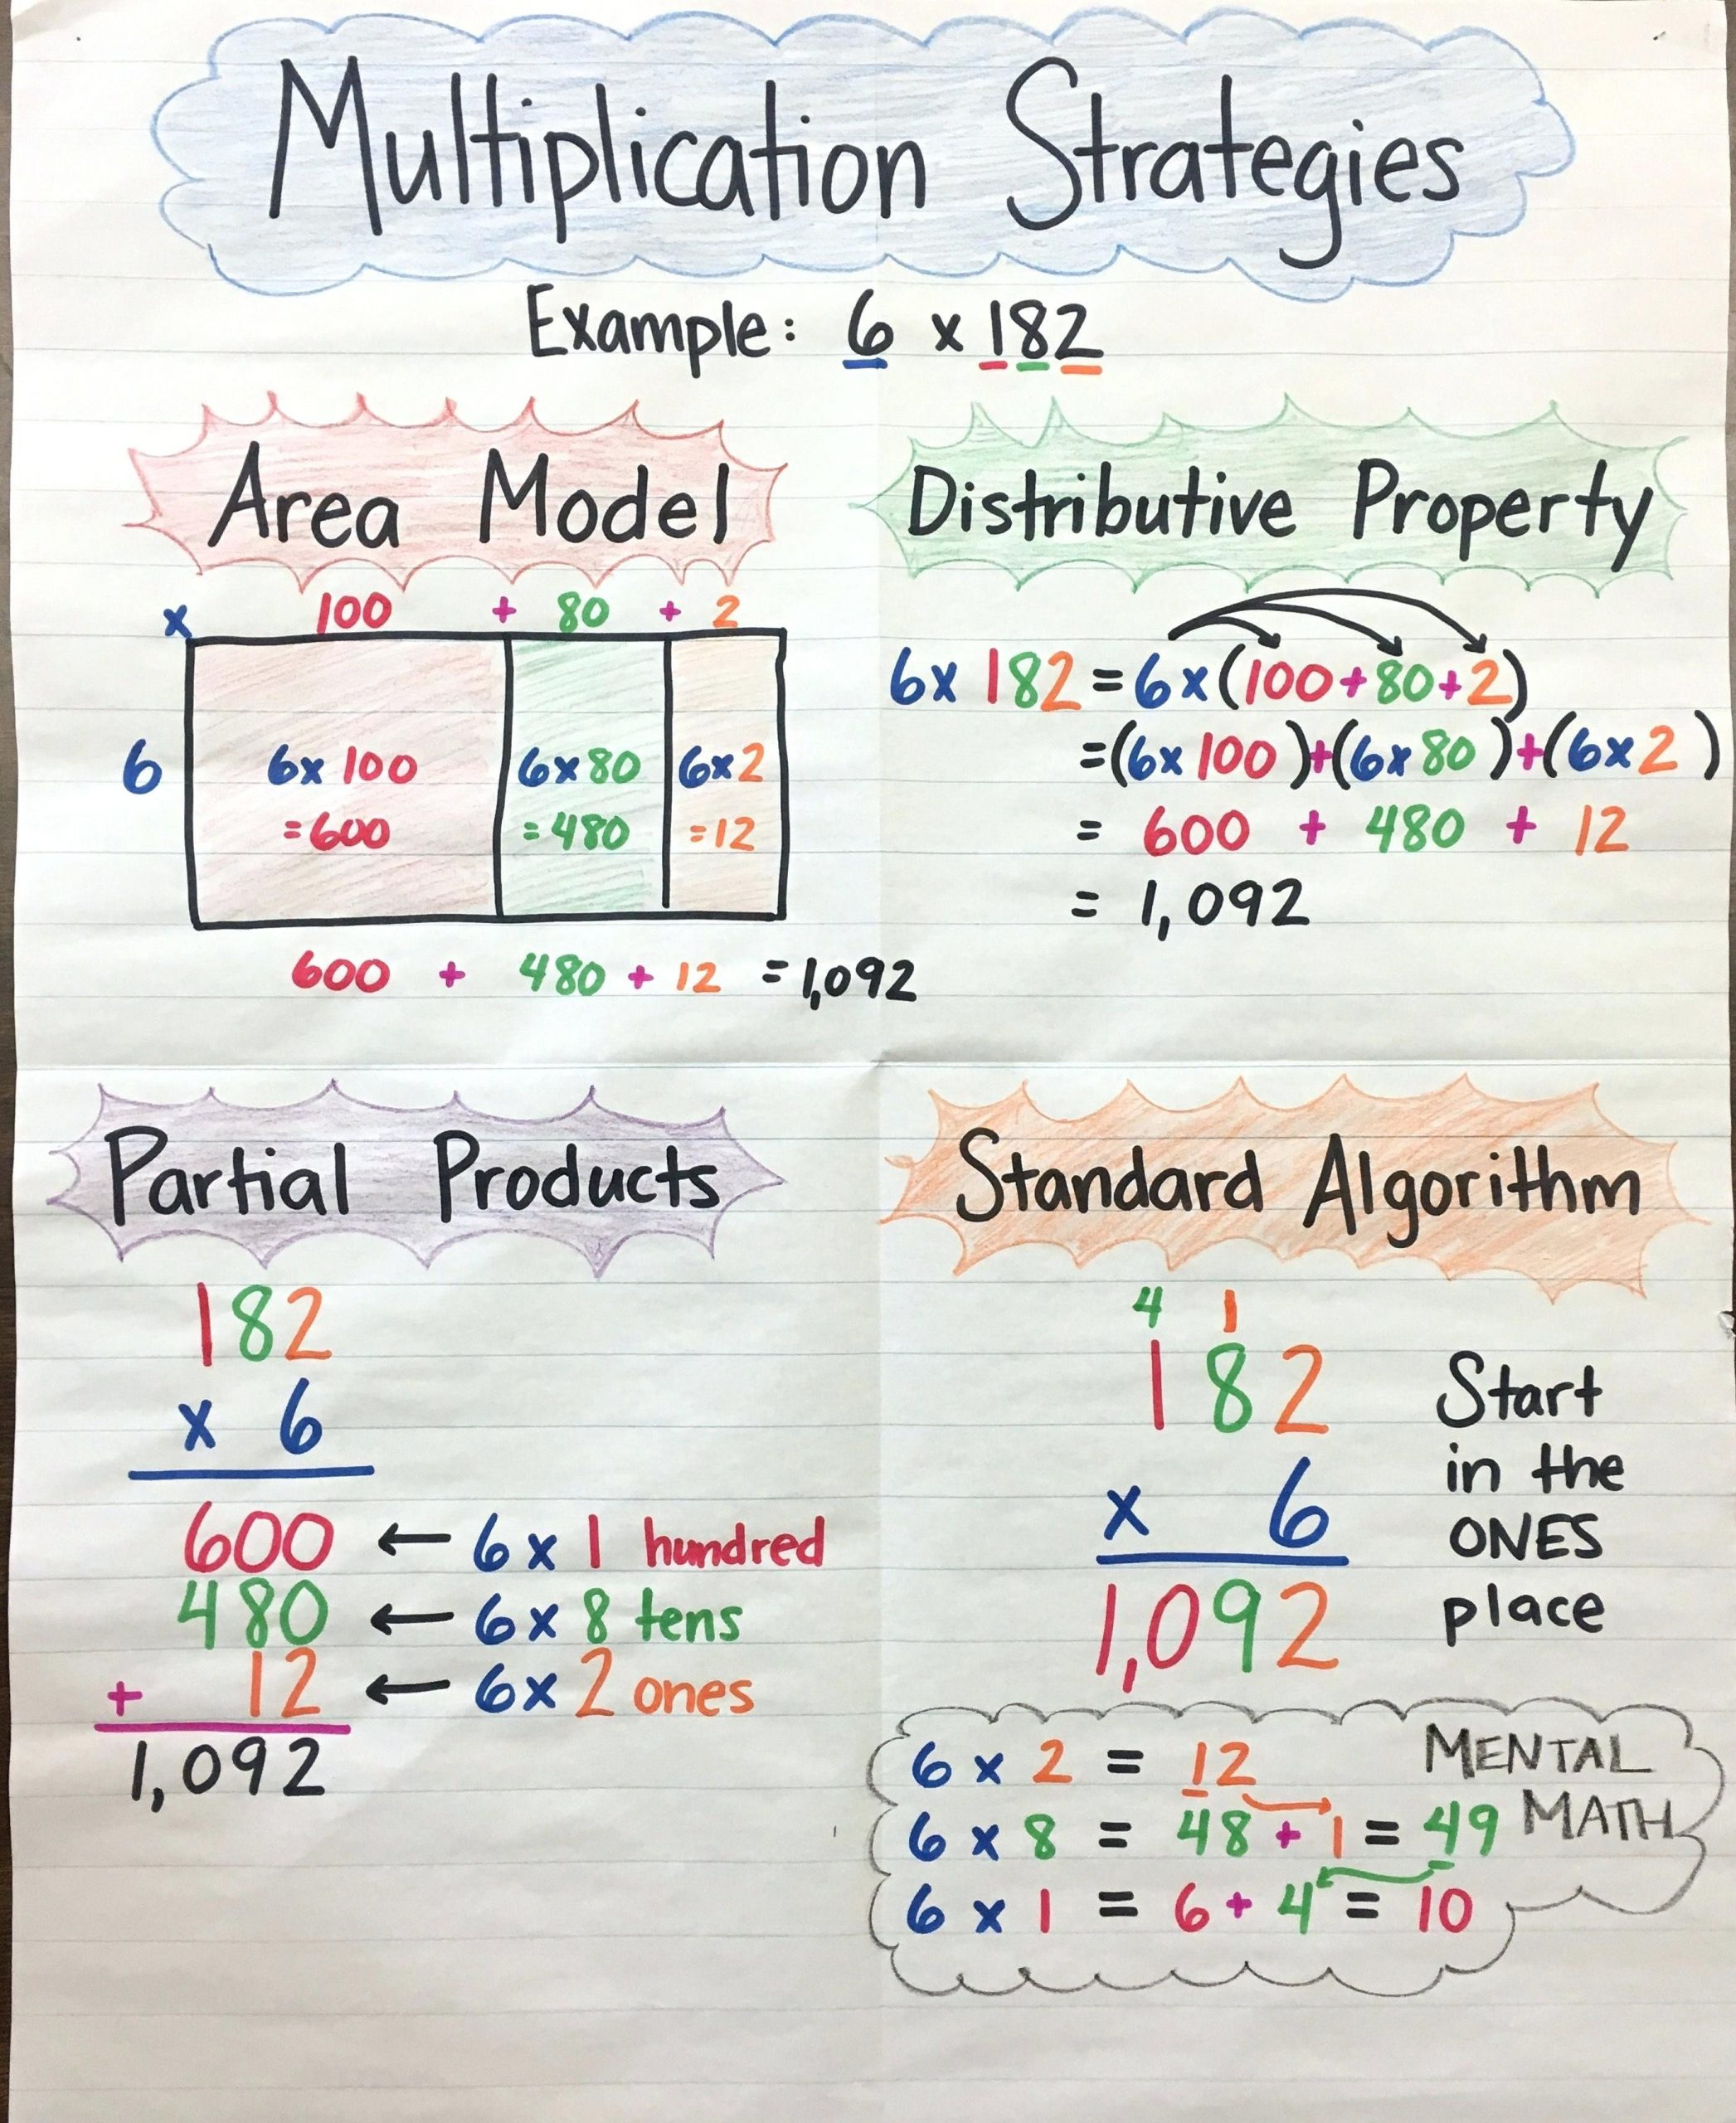 Distributive Property Worksheet 3rd Grade Distributive Property 3rd Grade Worksheets Grade Mon Core